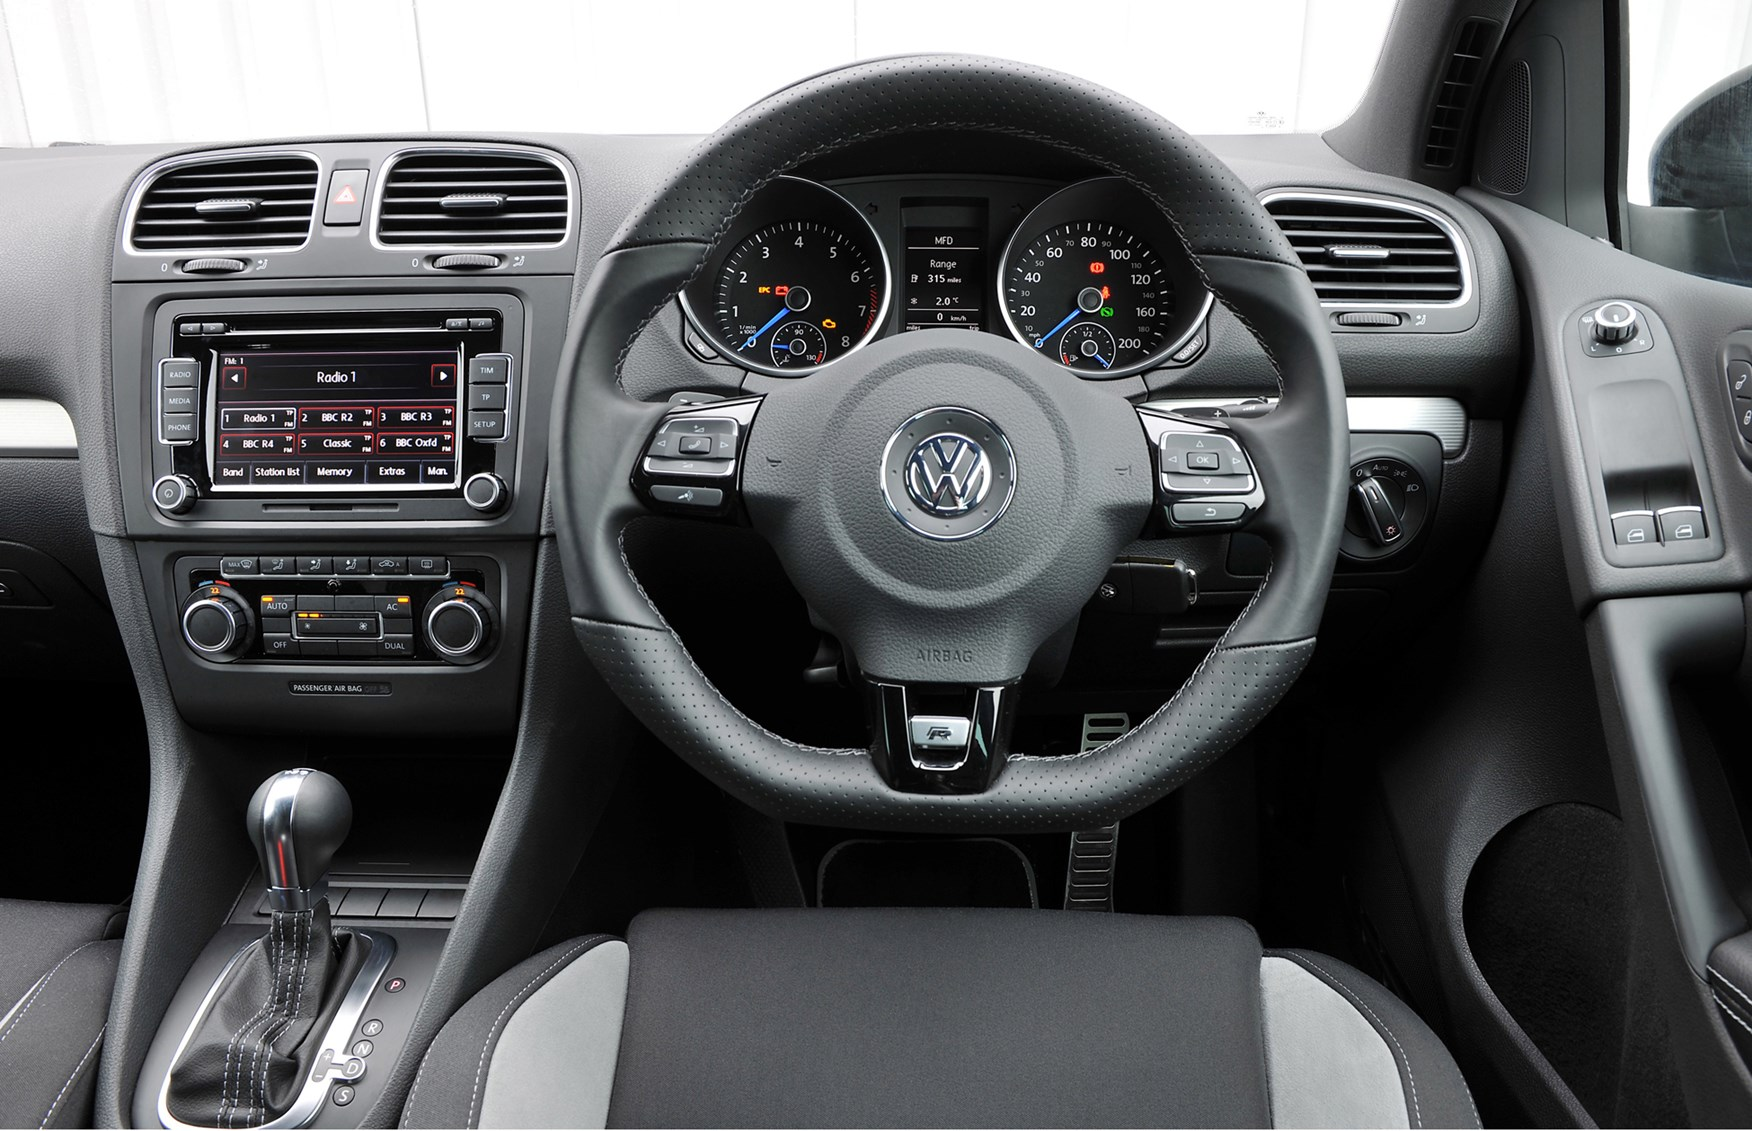 volkswagen golf r review 2010 2012 parkers. Black Bedroom Furniture Sets. Home Design Ideas